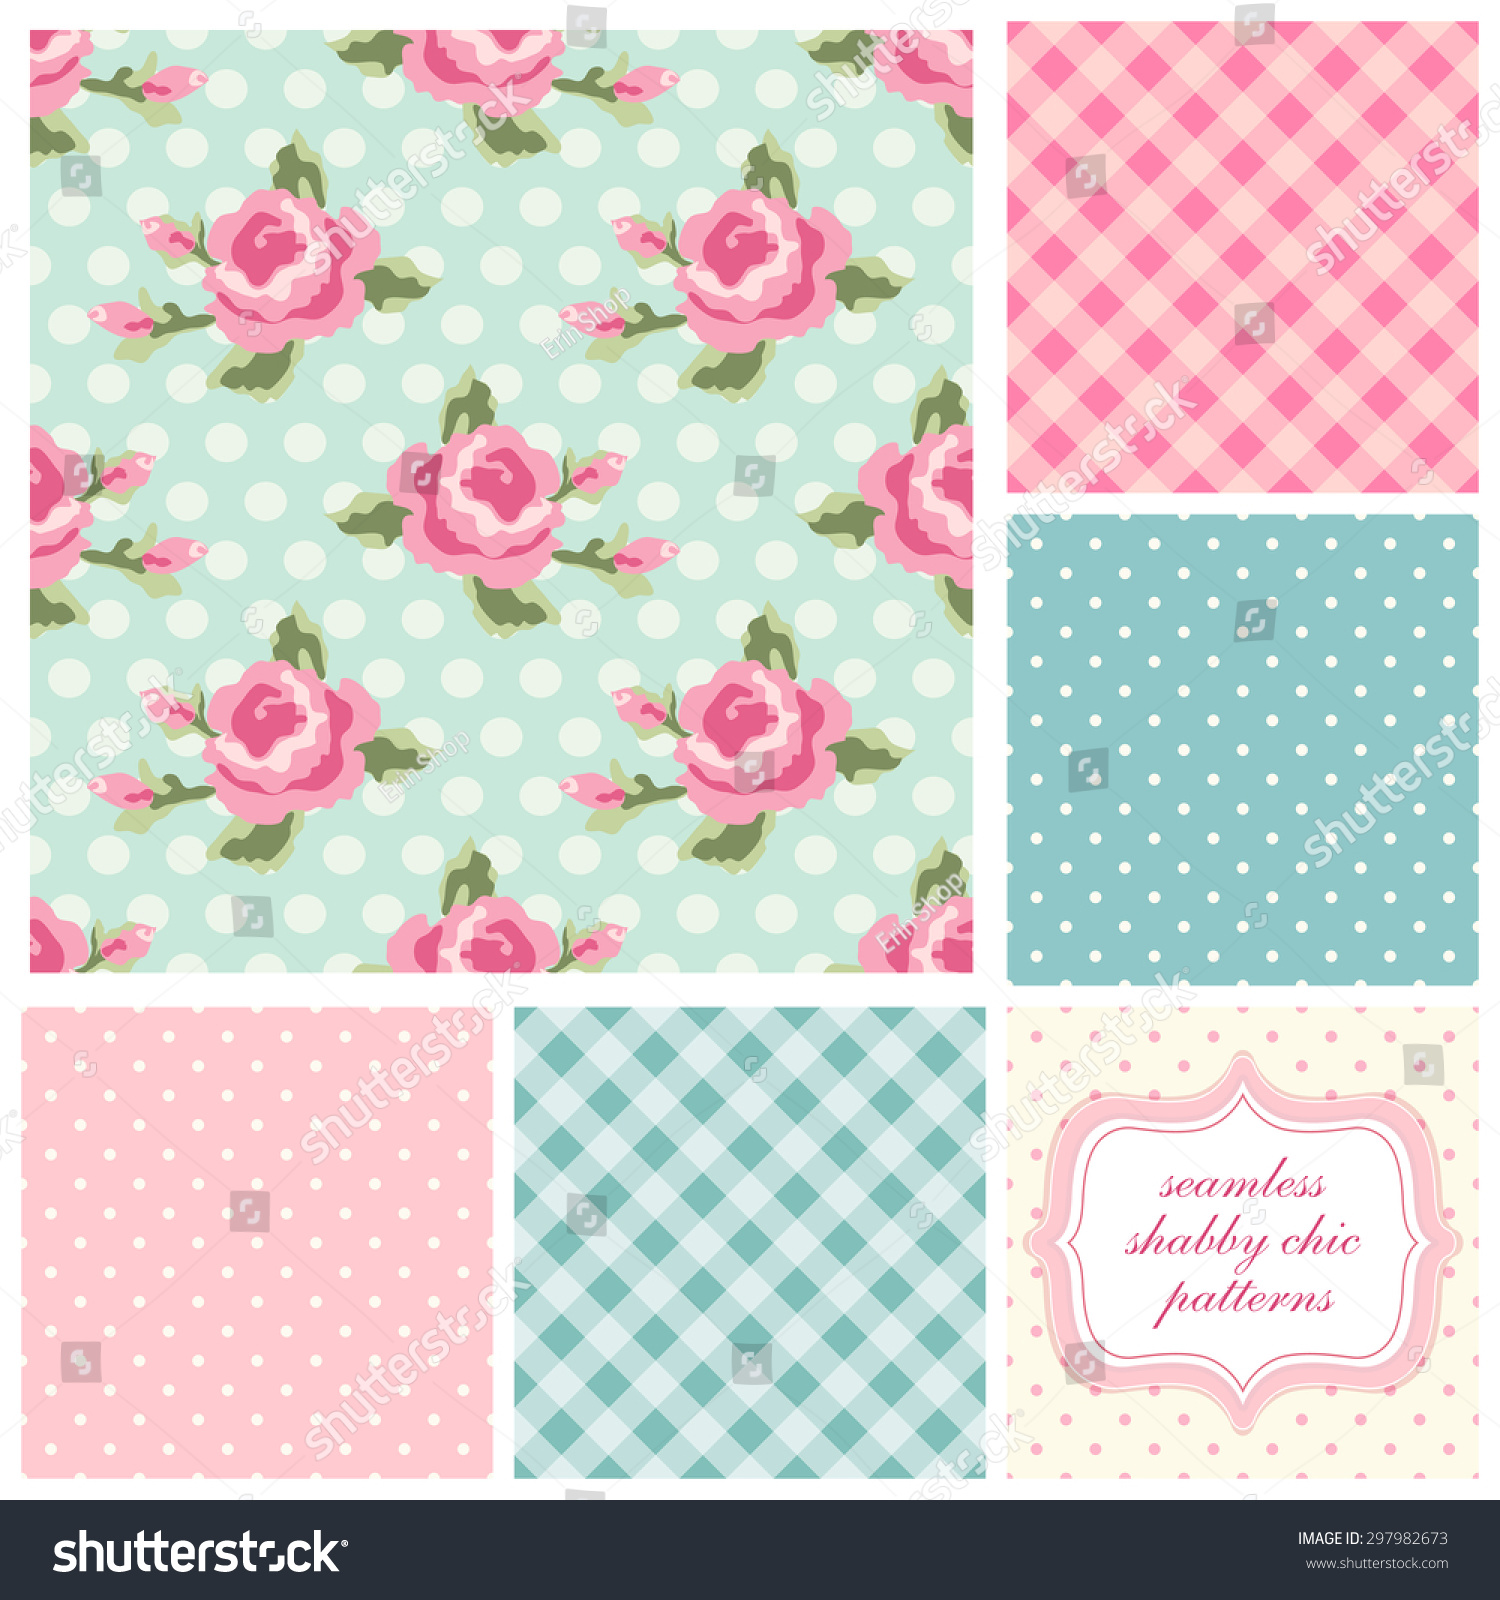 Set Of Cute Seamless Shabby Chic Patterns With Roses Polka Dot And